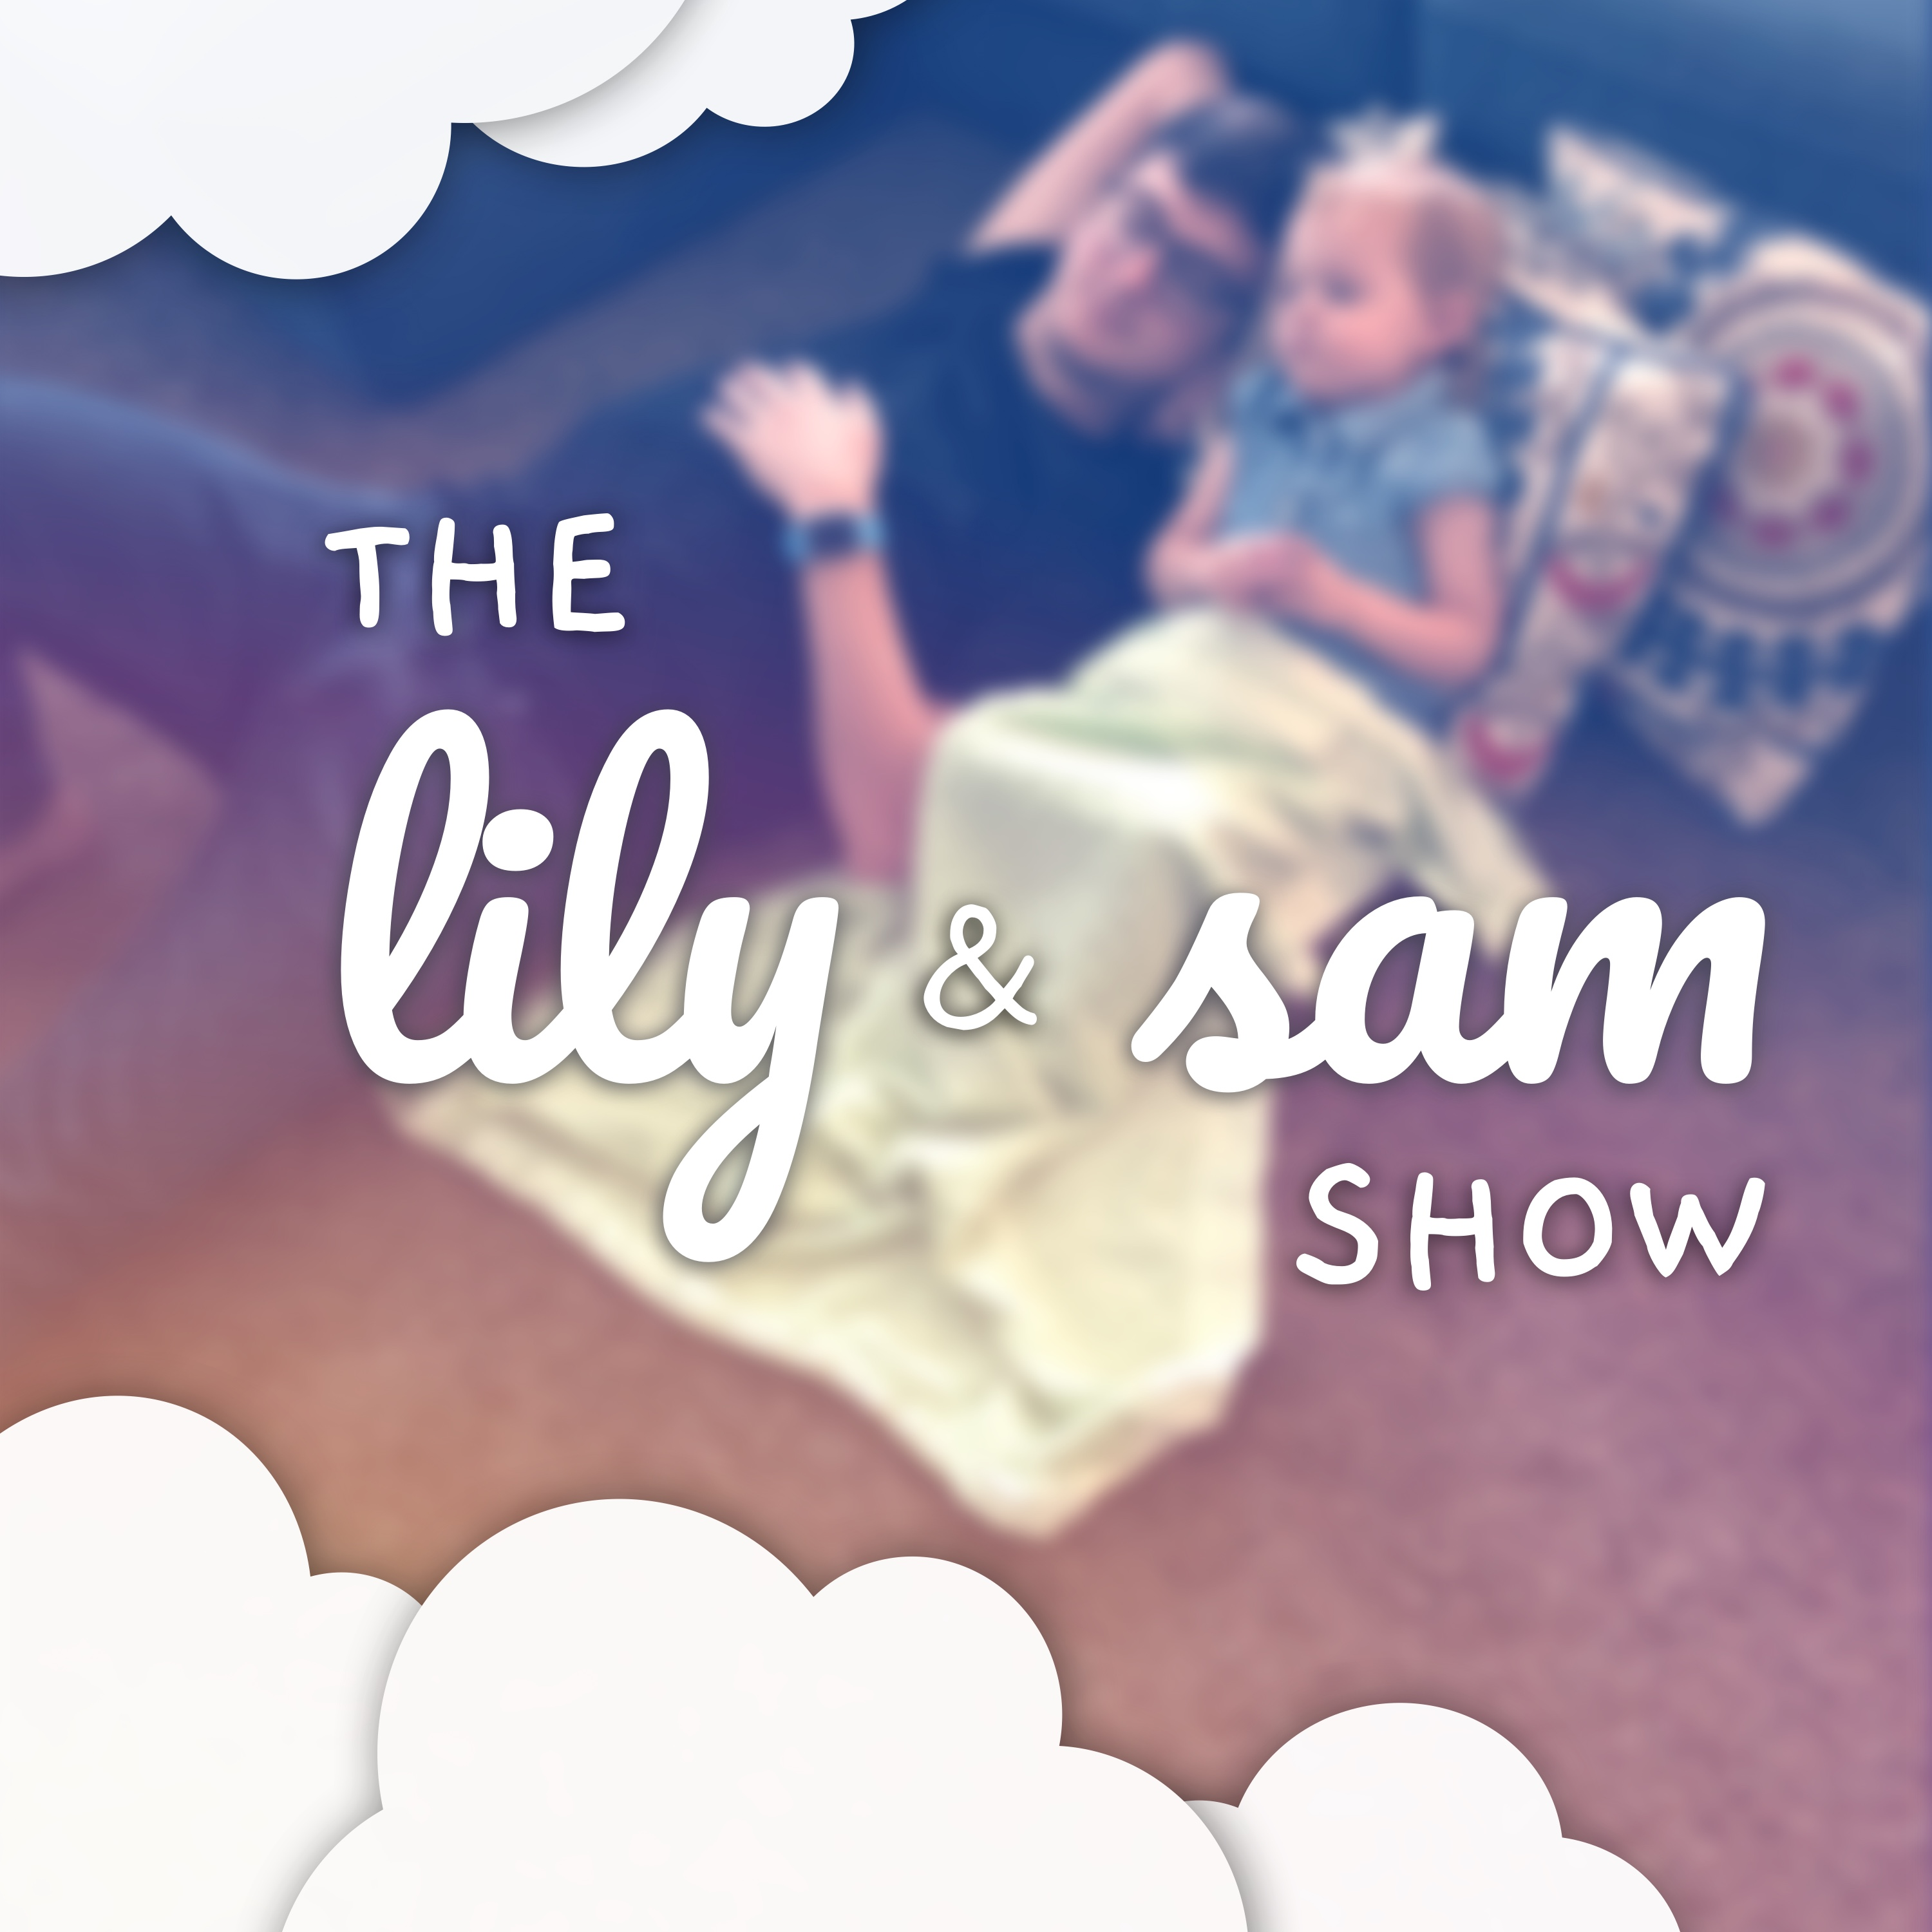 The Lily & Sam Show artwork